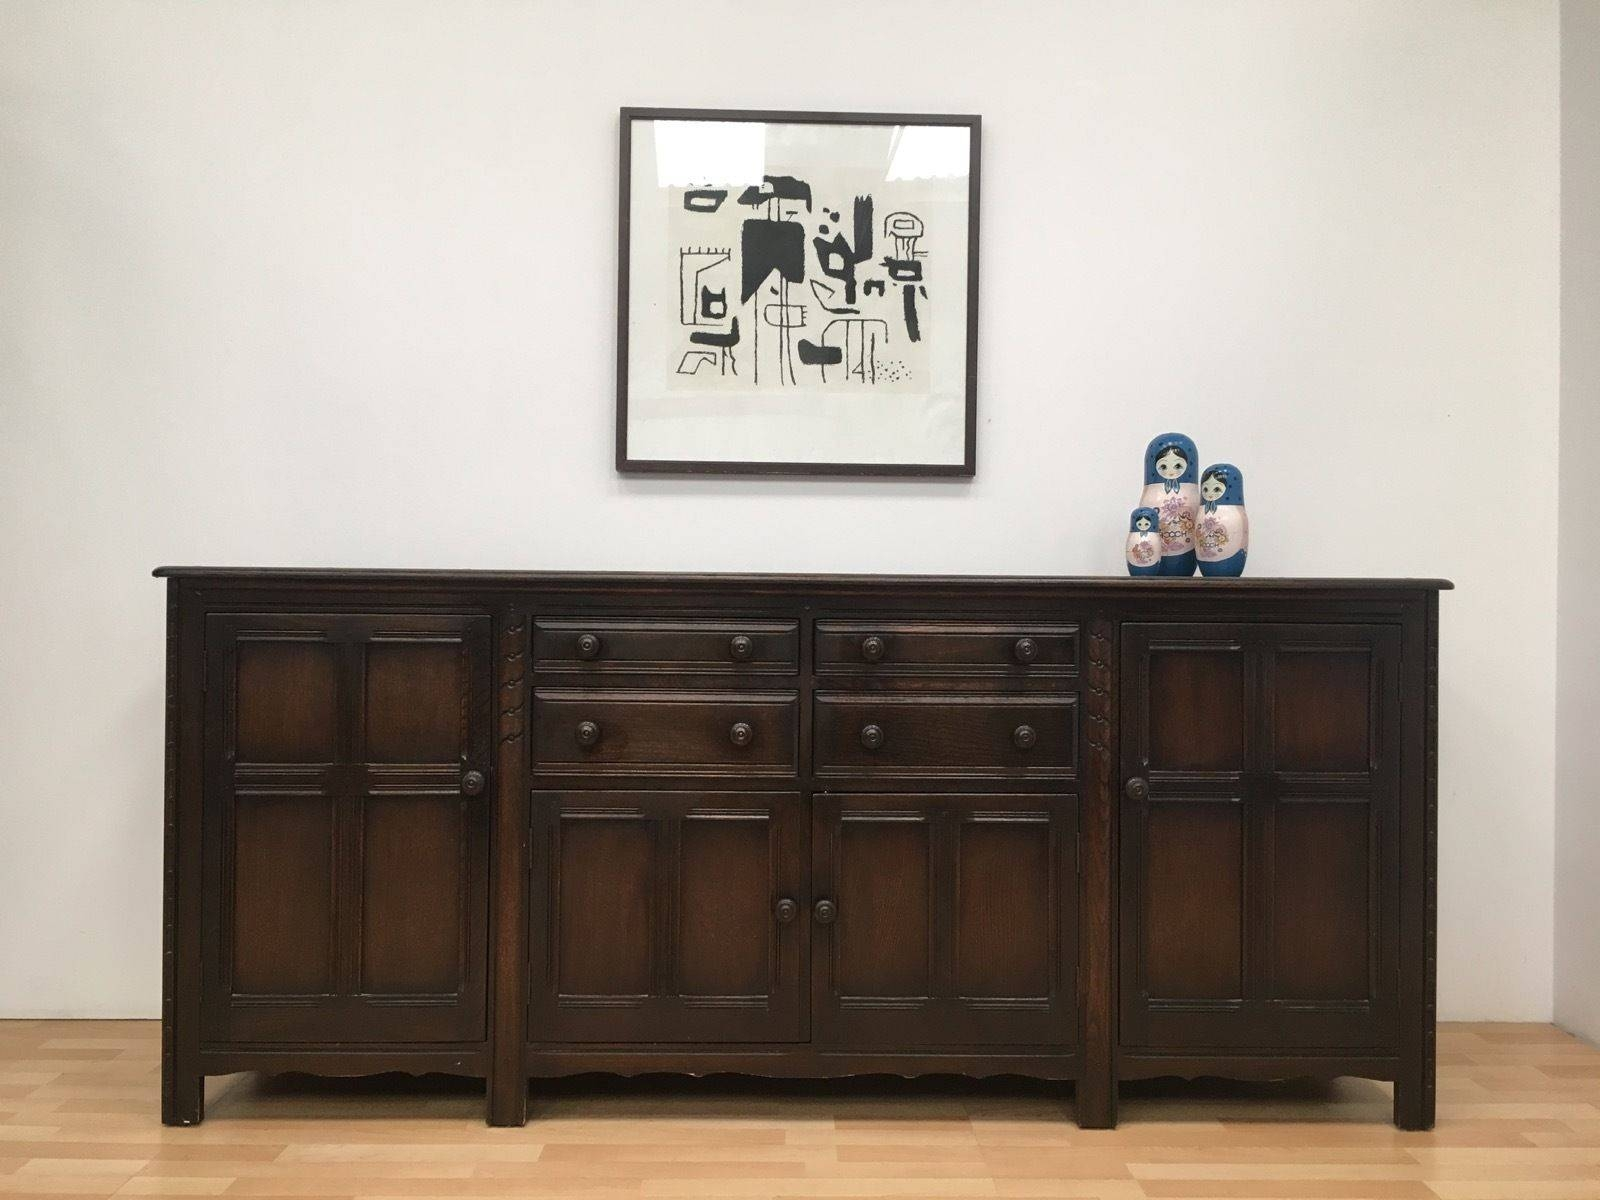 Rare Large Vintage Ercol 7 Foot Mid Century Sideboard In Dark Intended For 7 Foot Sideboards (View 6 of 15)